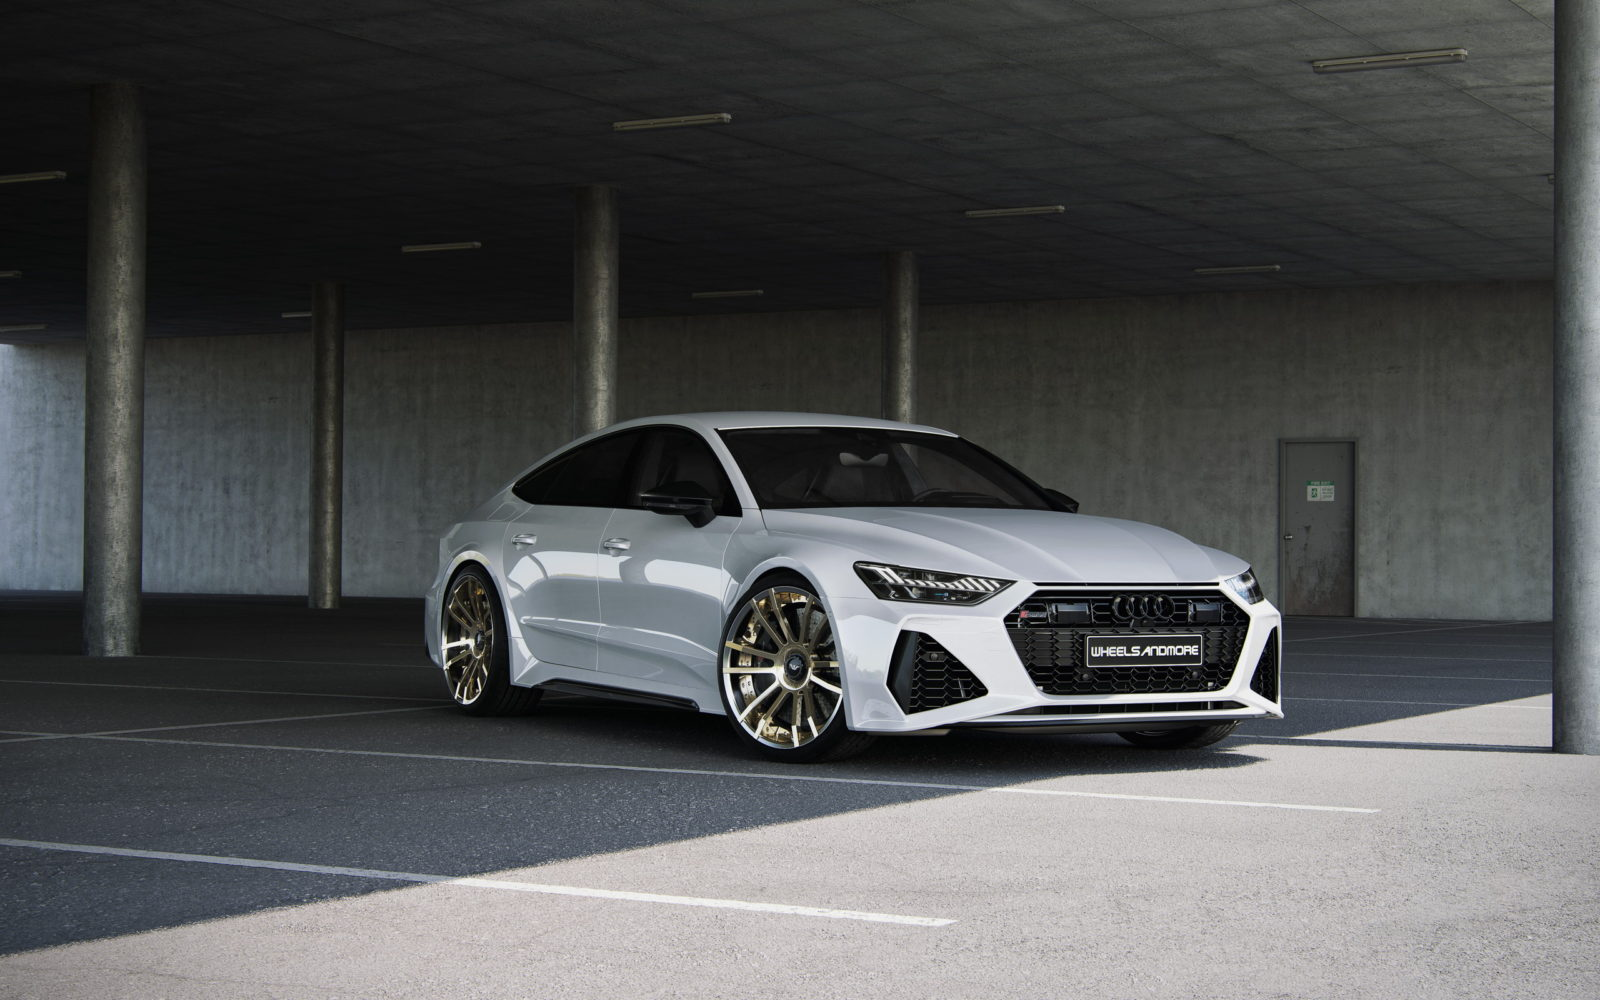 tuned-audi-rs-7-taps-into-its-hyper-side,-rolls-in-with-staggering-1,045-hp